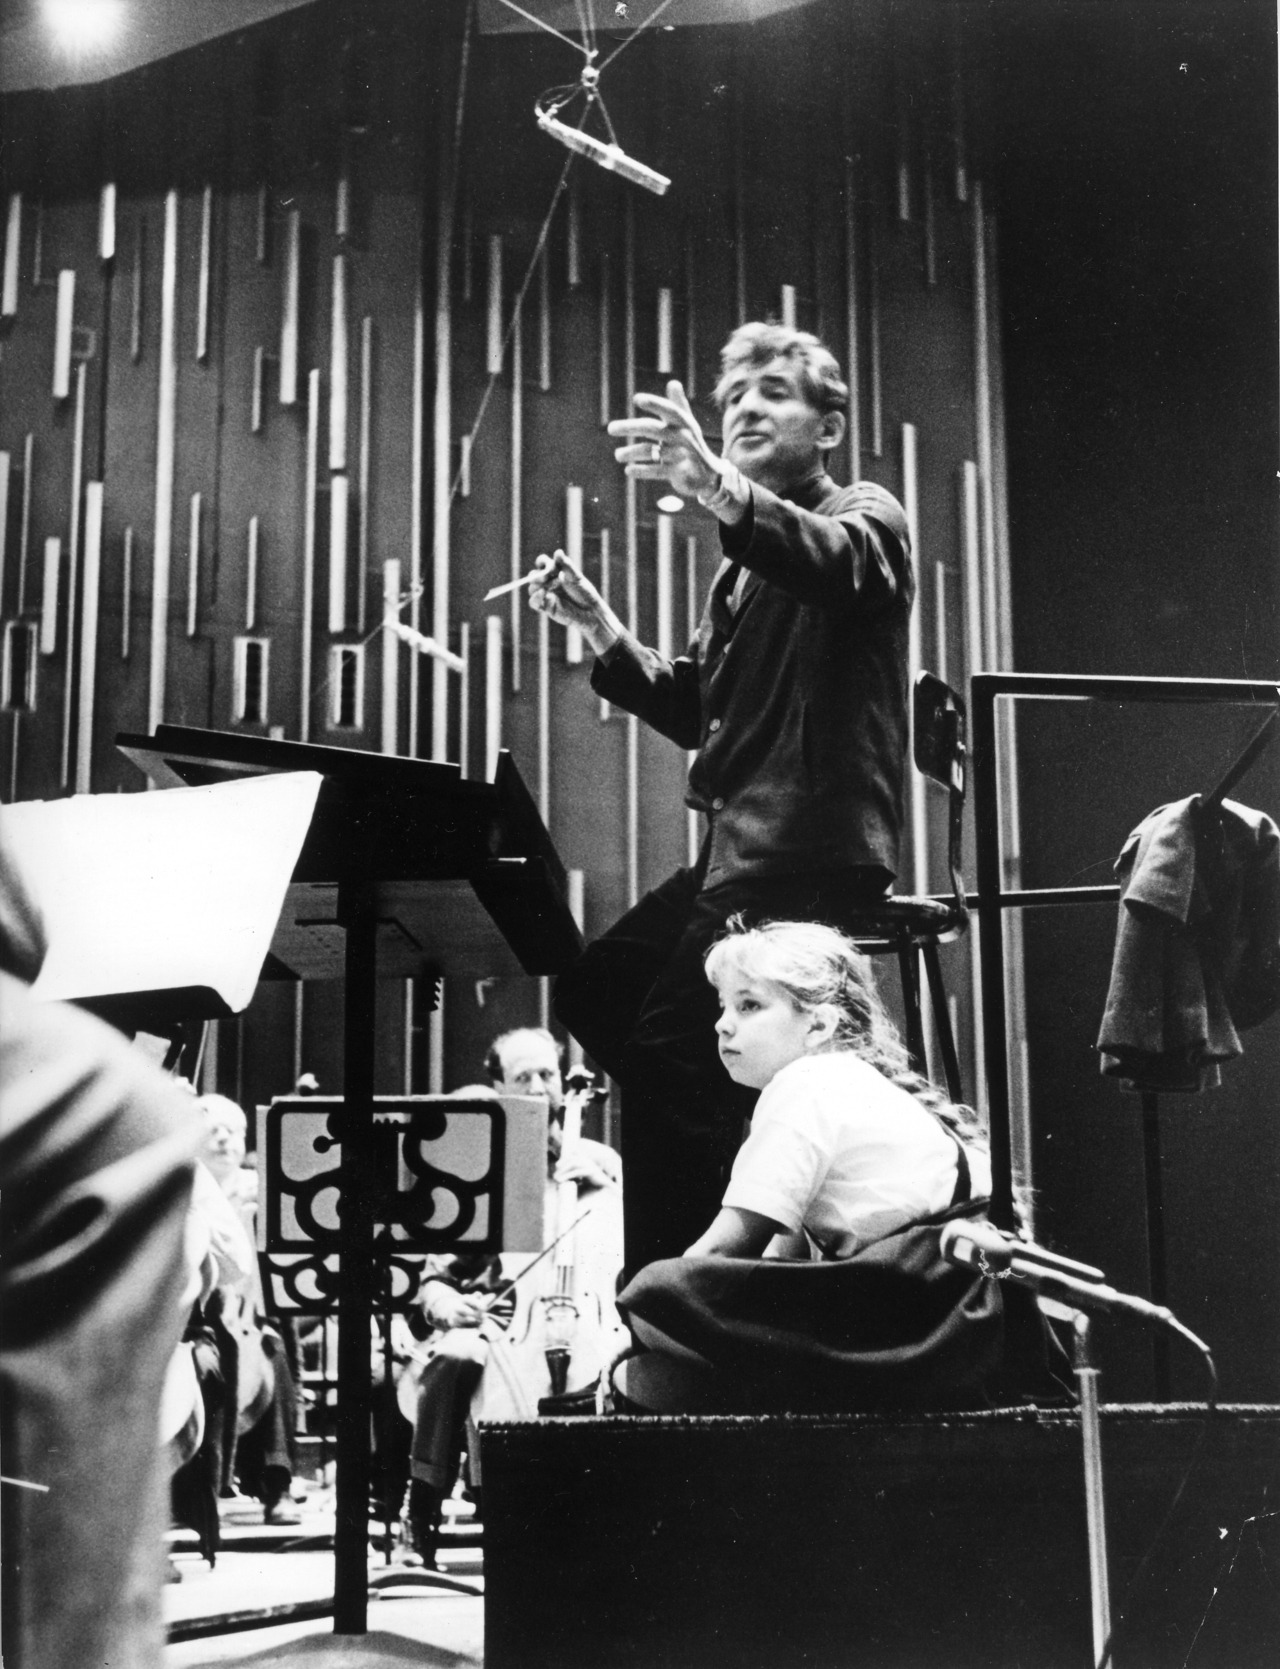 Conductor/composer Leonard Bernstein (1918-1990) directed the NYPhil's Young Person's Concerts from 1958-72, which were broadcasted on TV. Iconic.